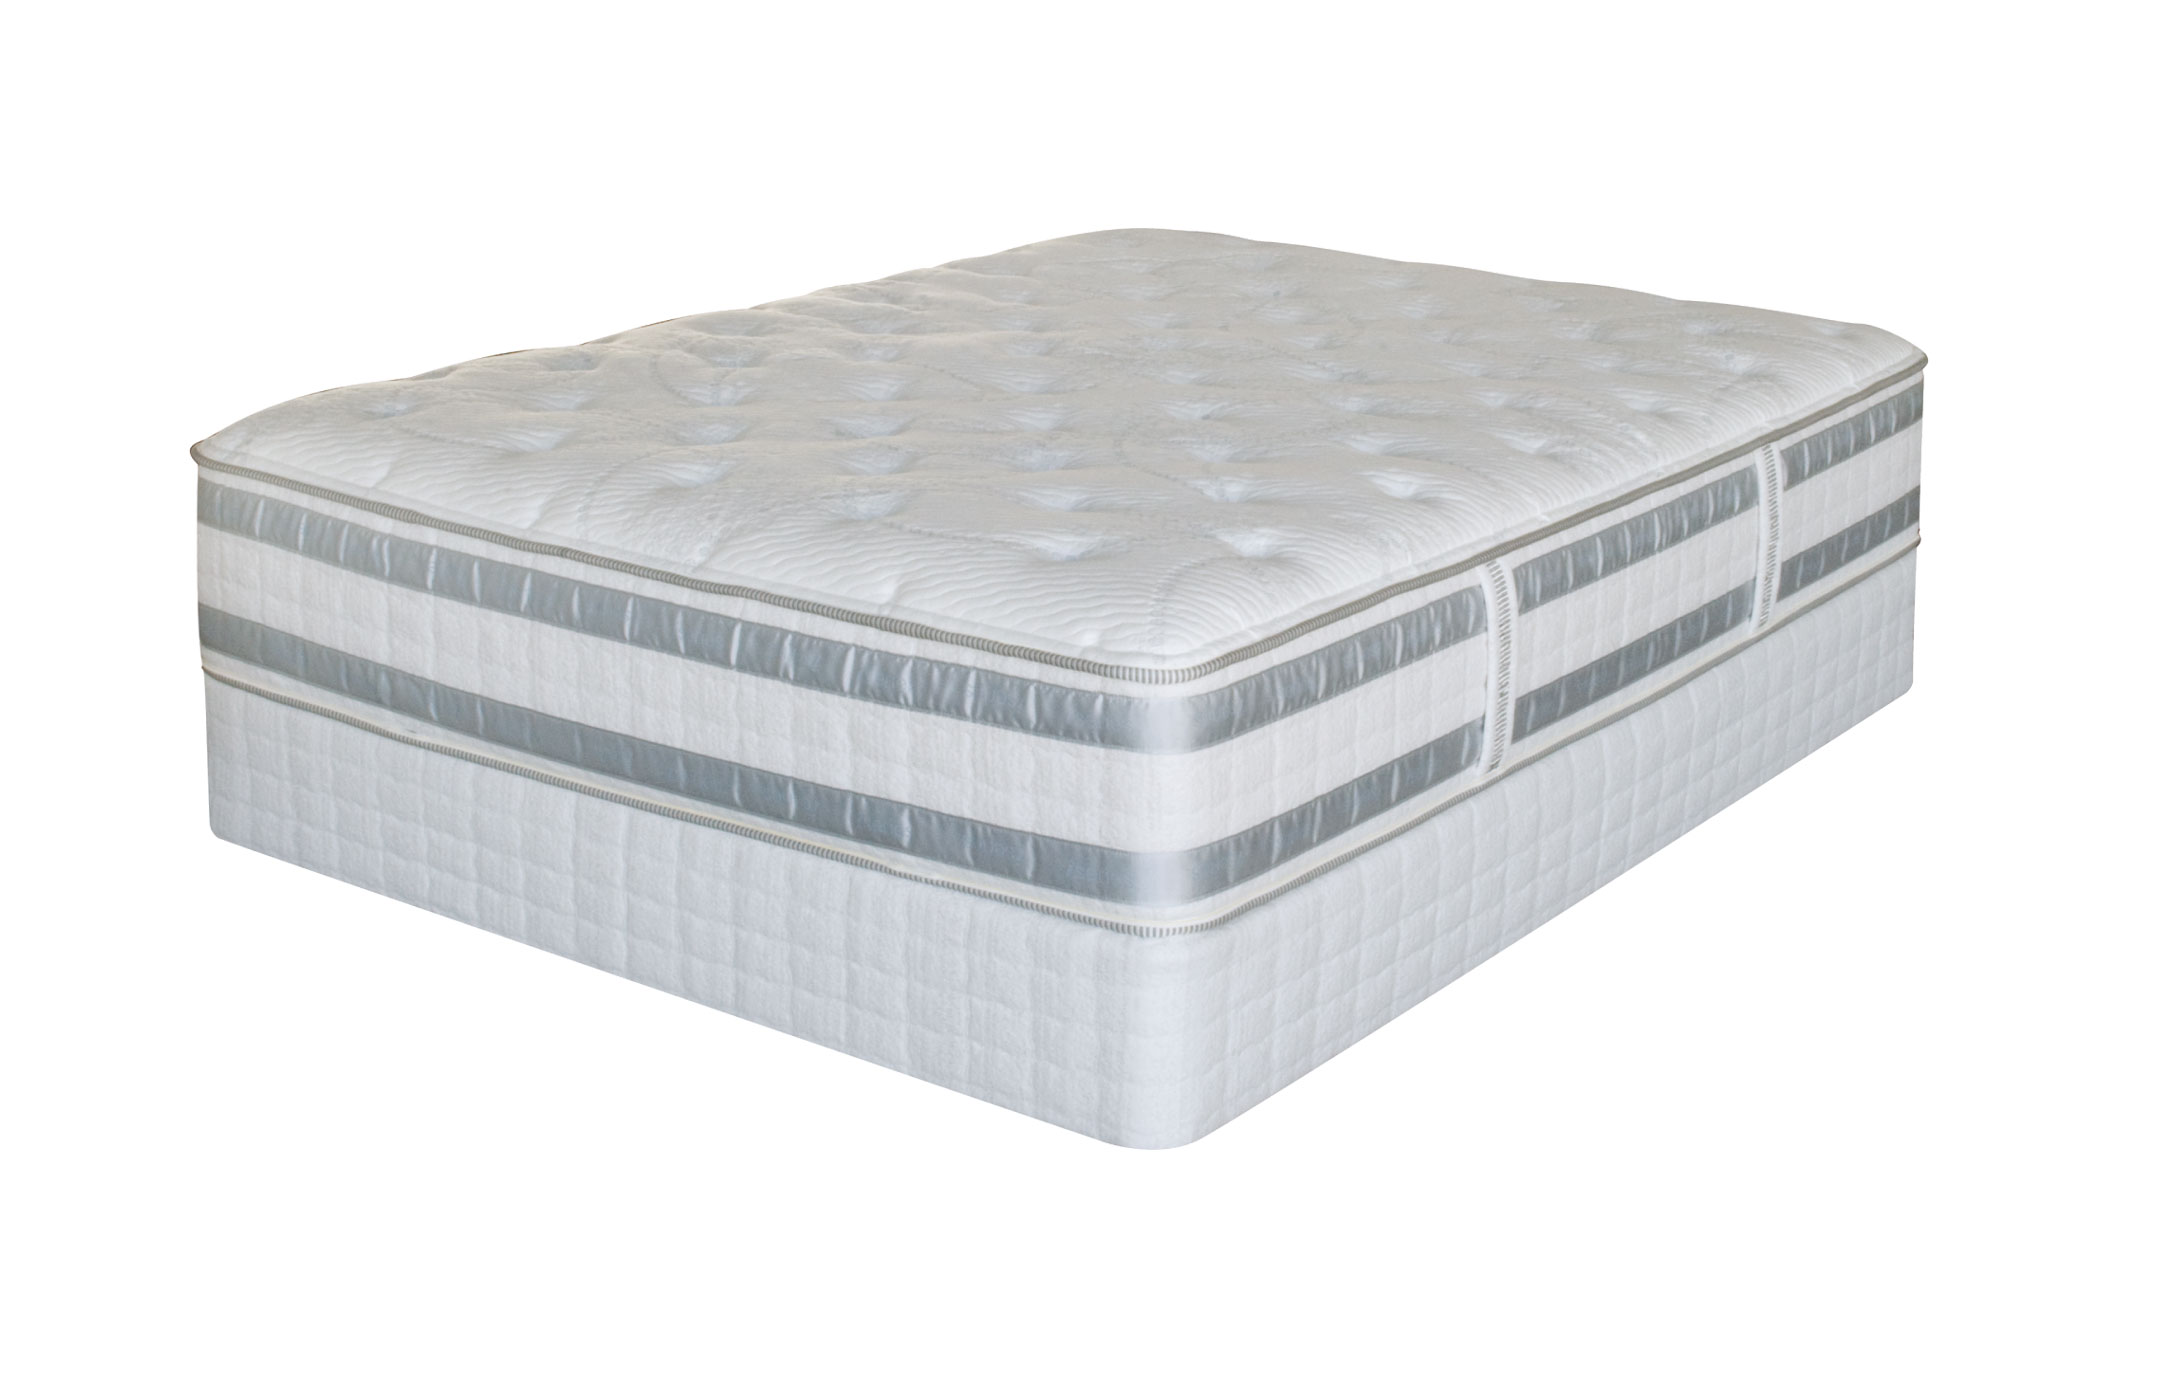 Stearns And Foster Reviews >> Serta Perfect Day iSeries Applause Plush - Mattress Reviews | GoodBed.com